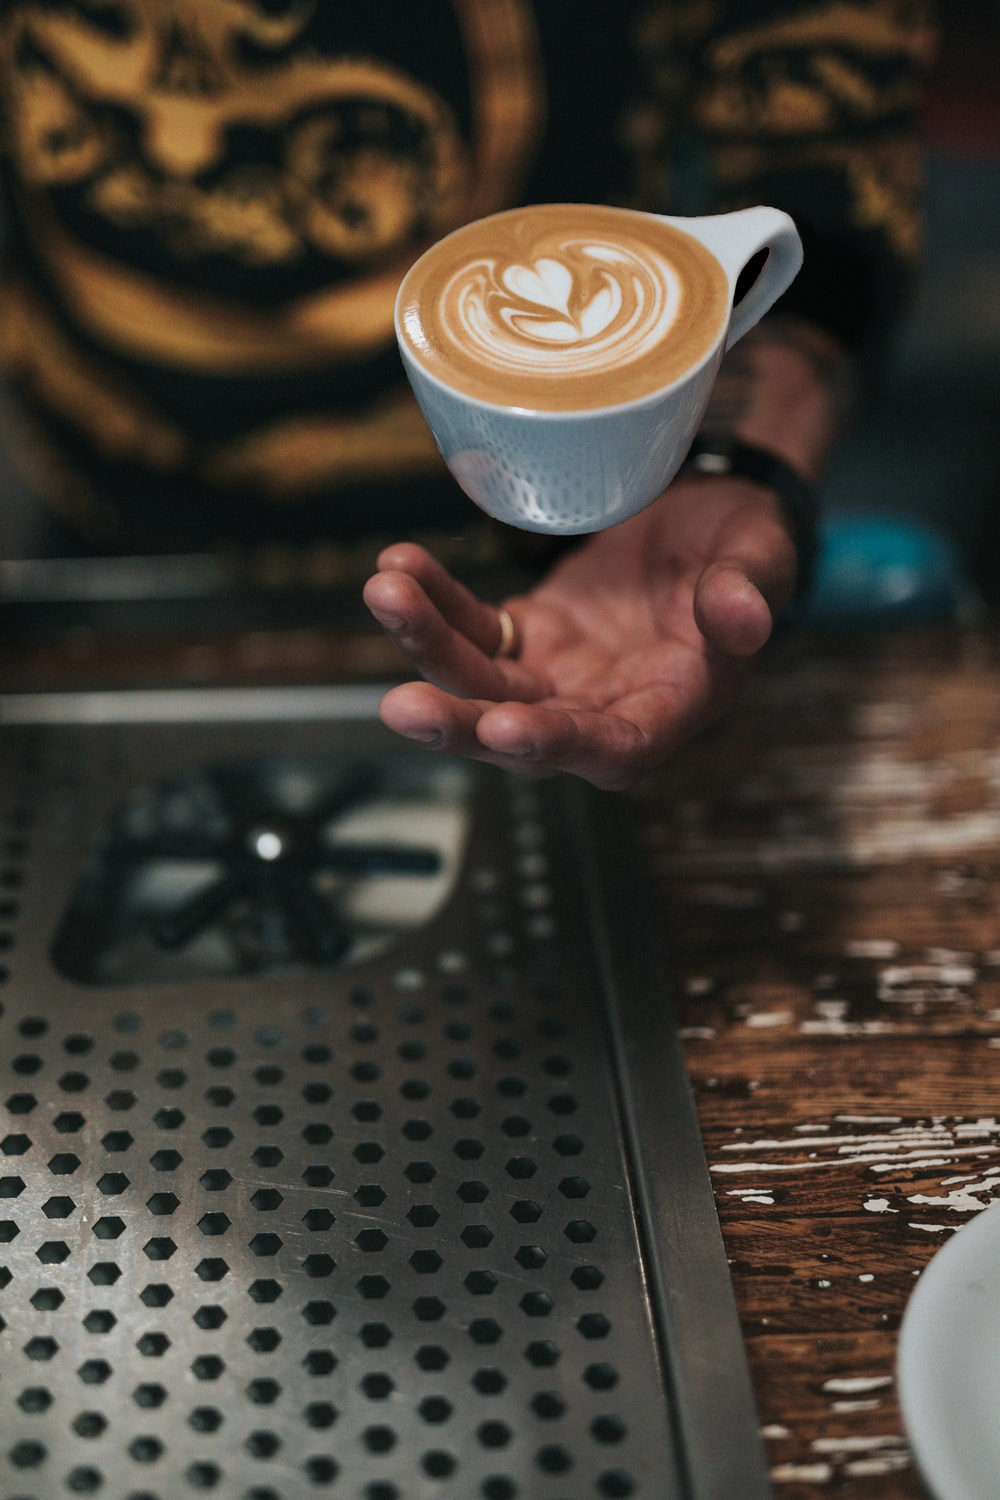 cup of cafe over person's hand